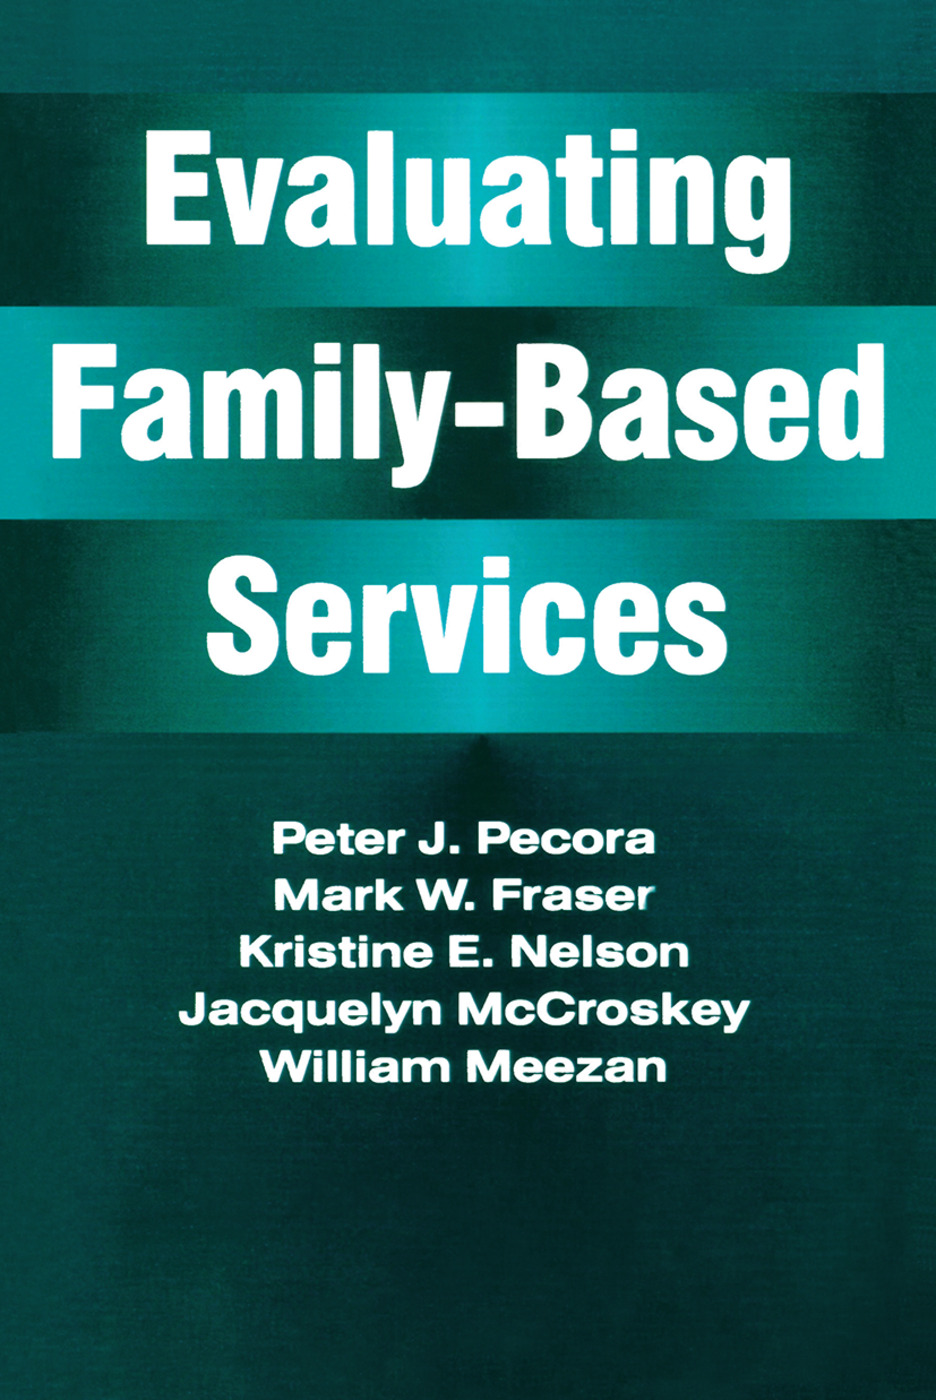 Evaluating Family-Based Services: 1st Edition (Paperback) book cover